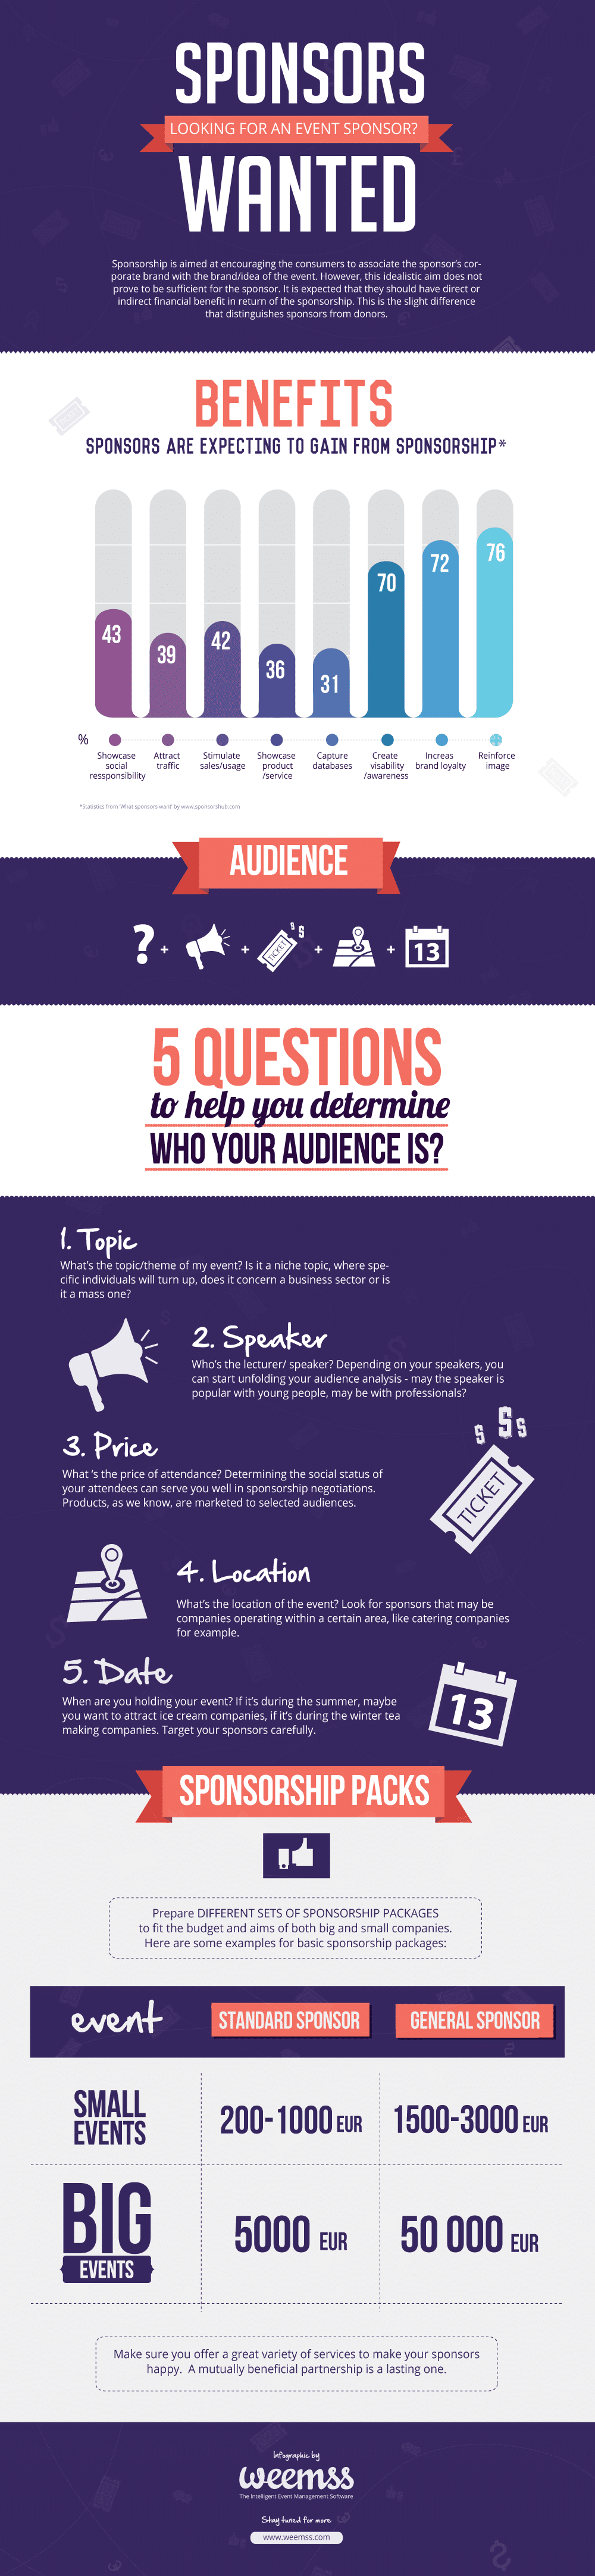 Sponsorship Guide: How To Procure Sponsorships [Infographic]